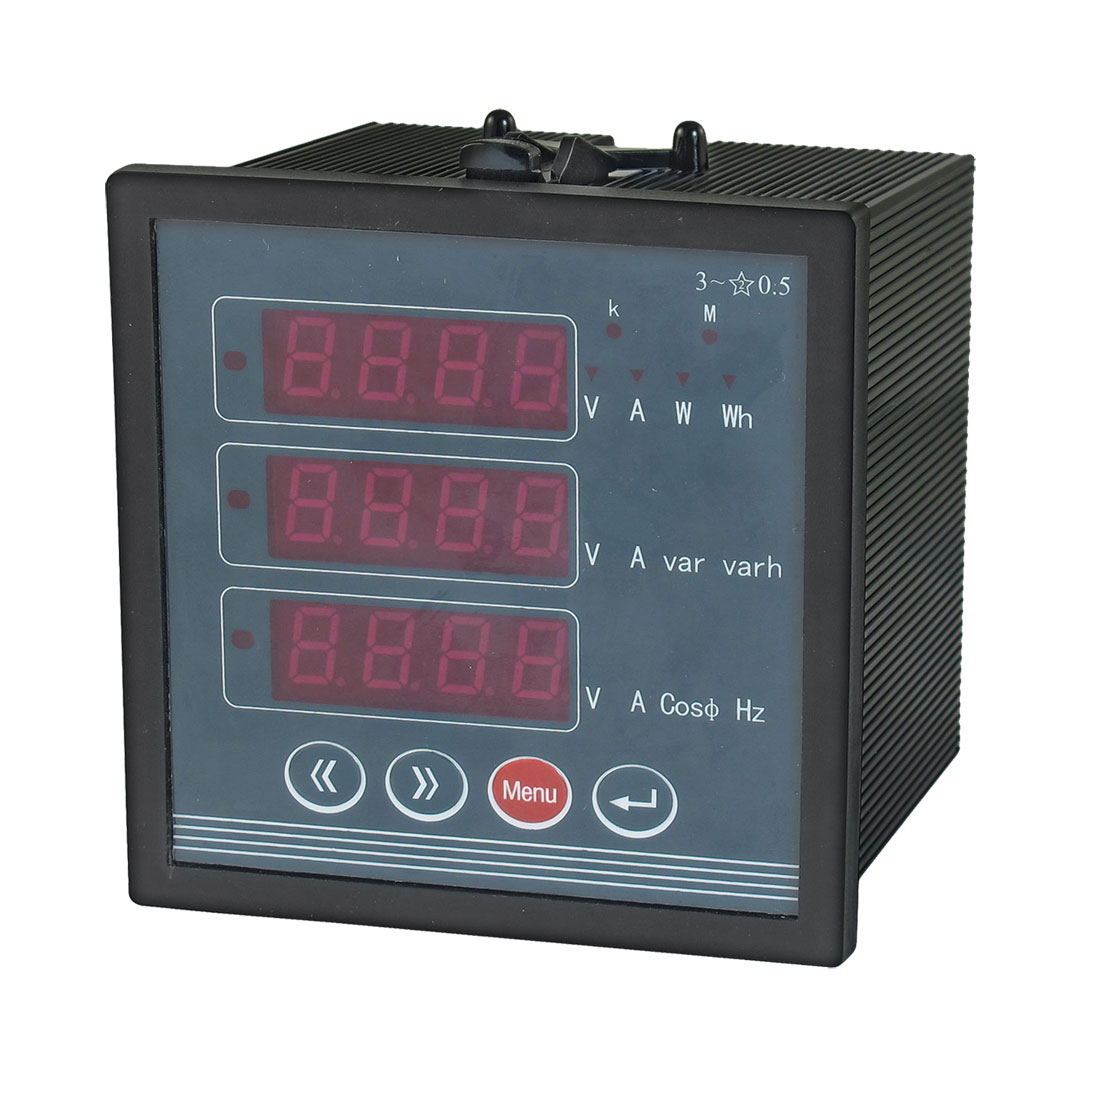 AC 380V 5A Multifunction LED Display Voltage Frequency Meter Instrument